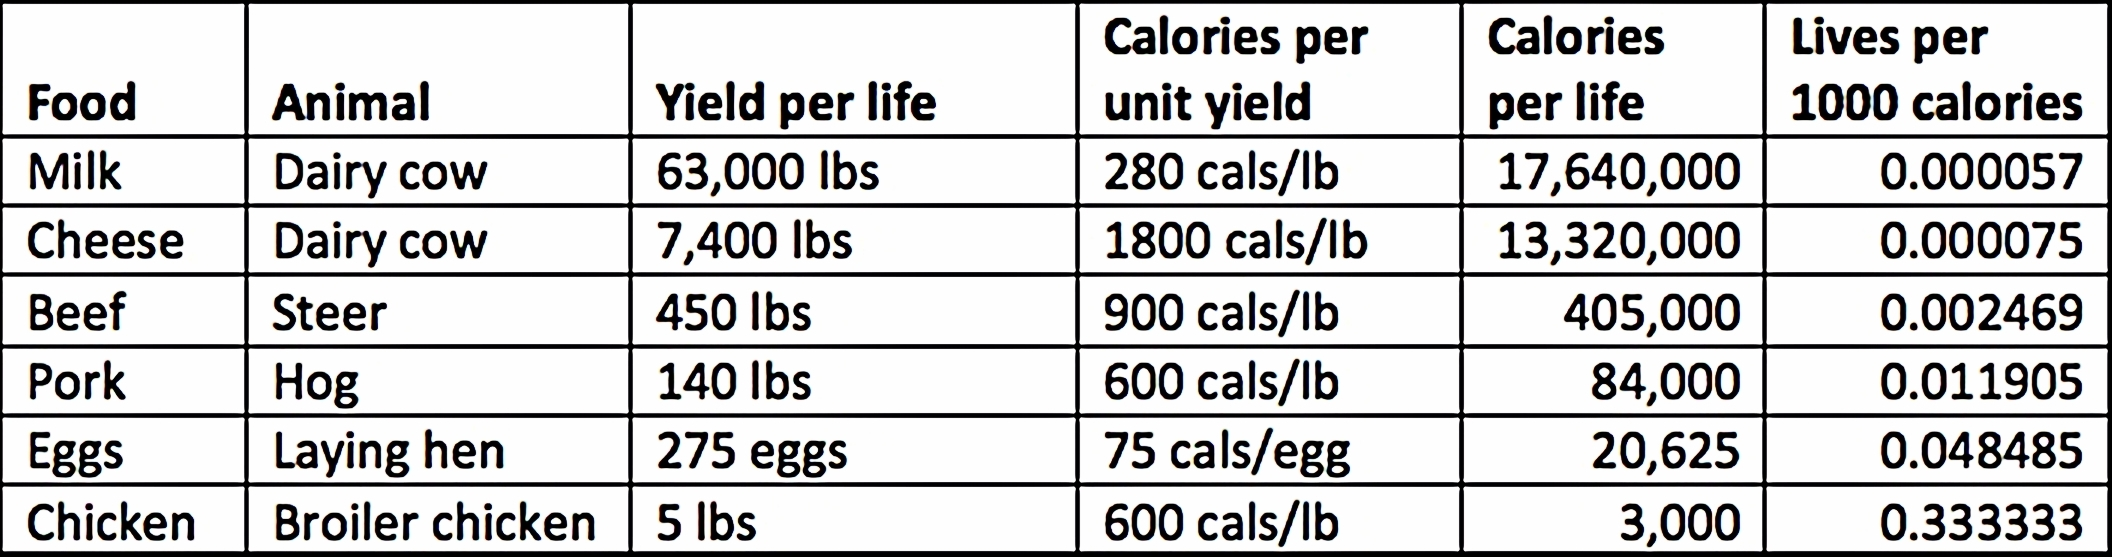 How many calories are in the products